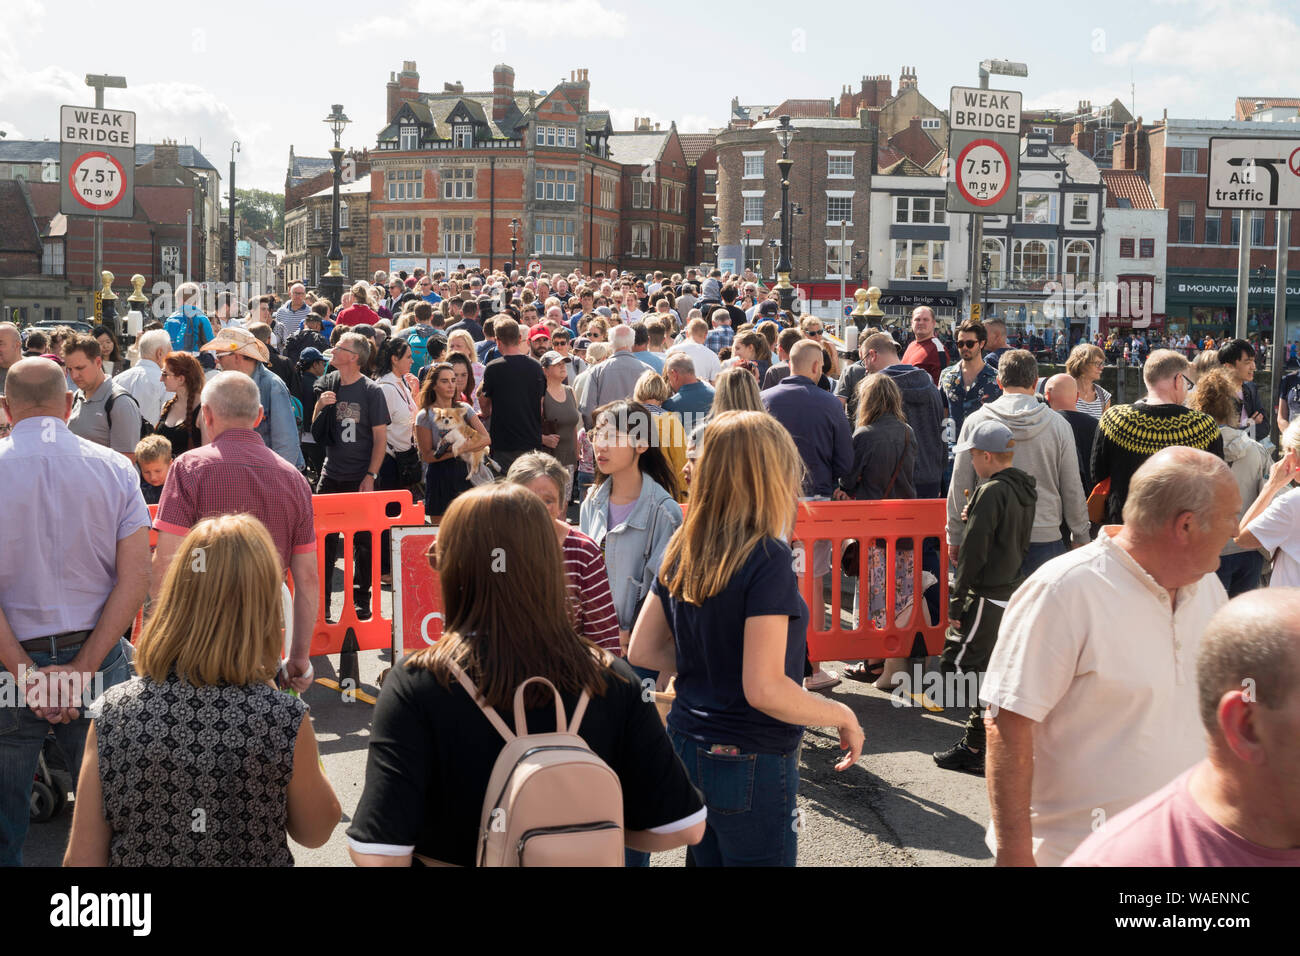 crowds-of-people-crossing-the-swing-brid